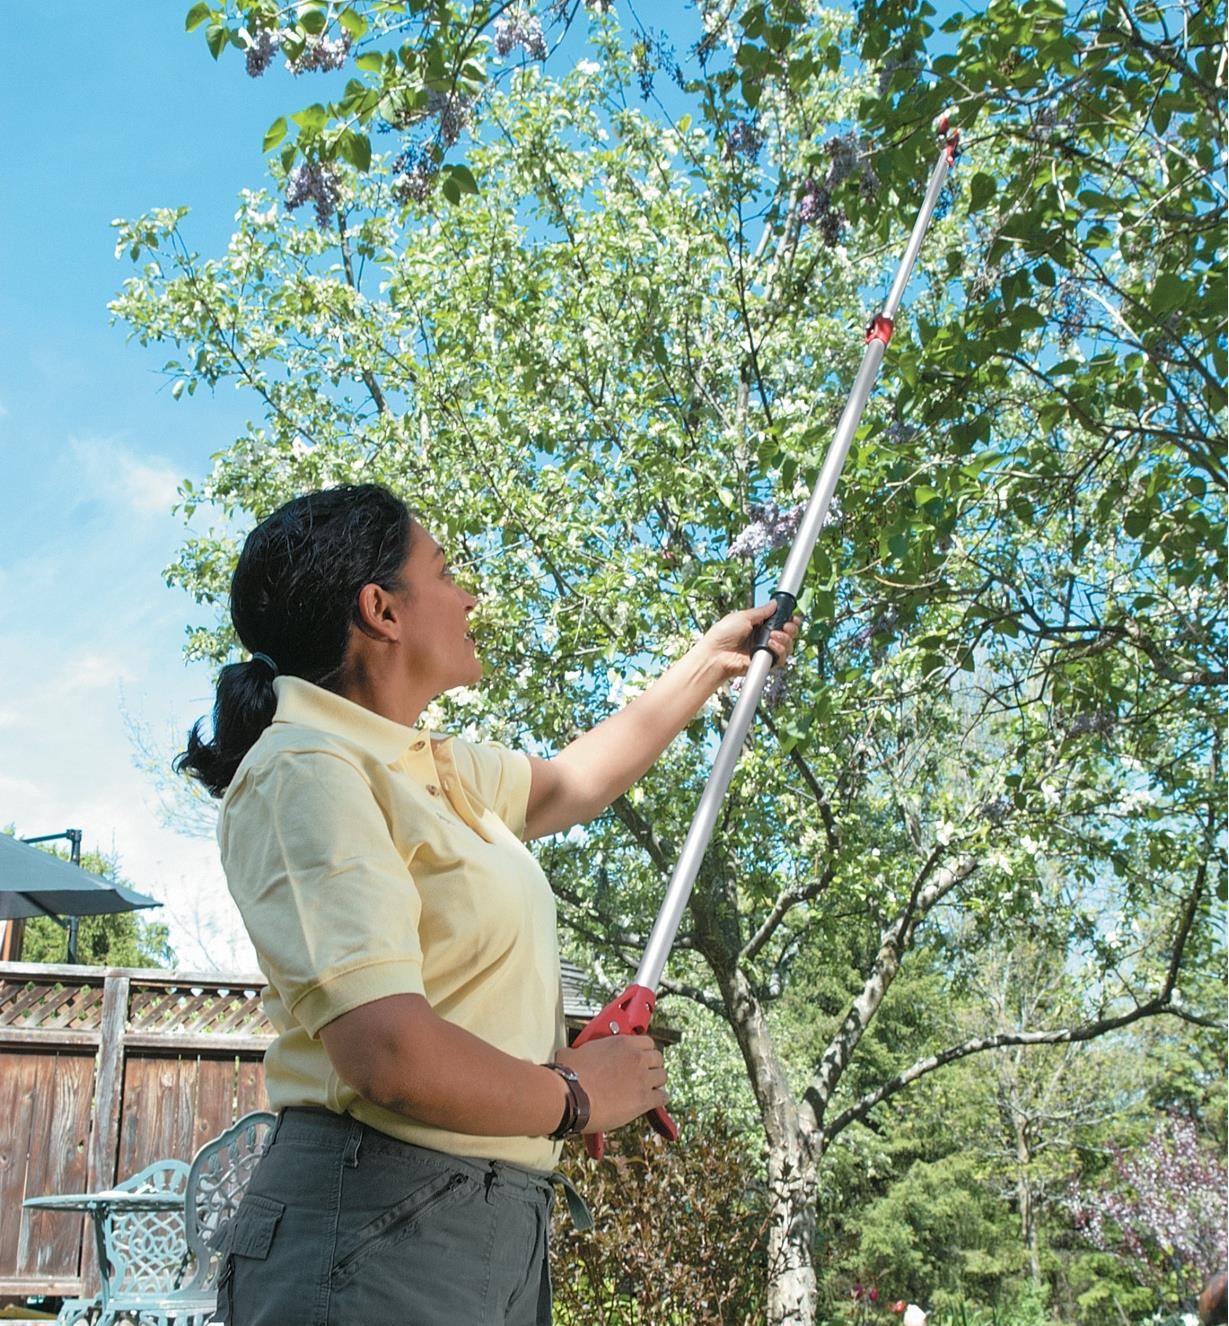 A woman uses the telescoping pruner to cut a high tree branch